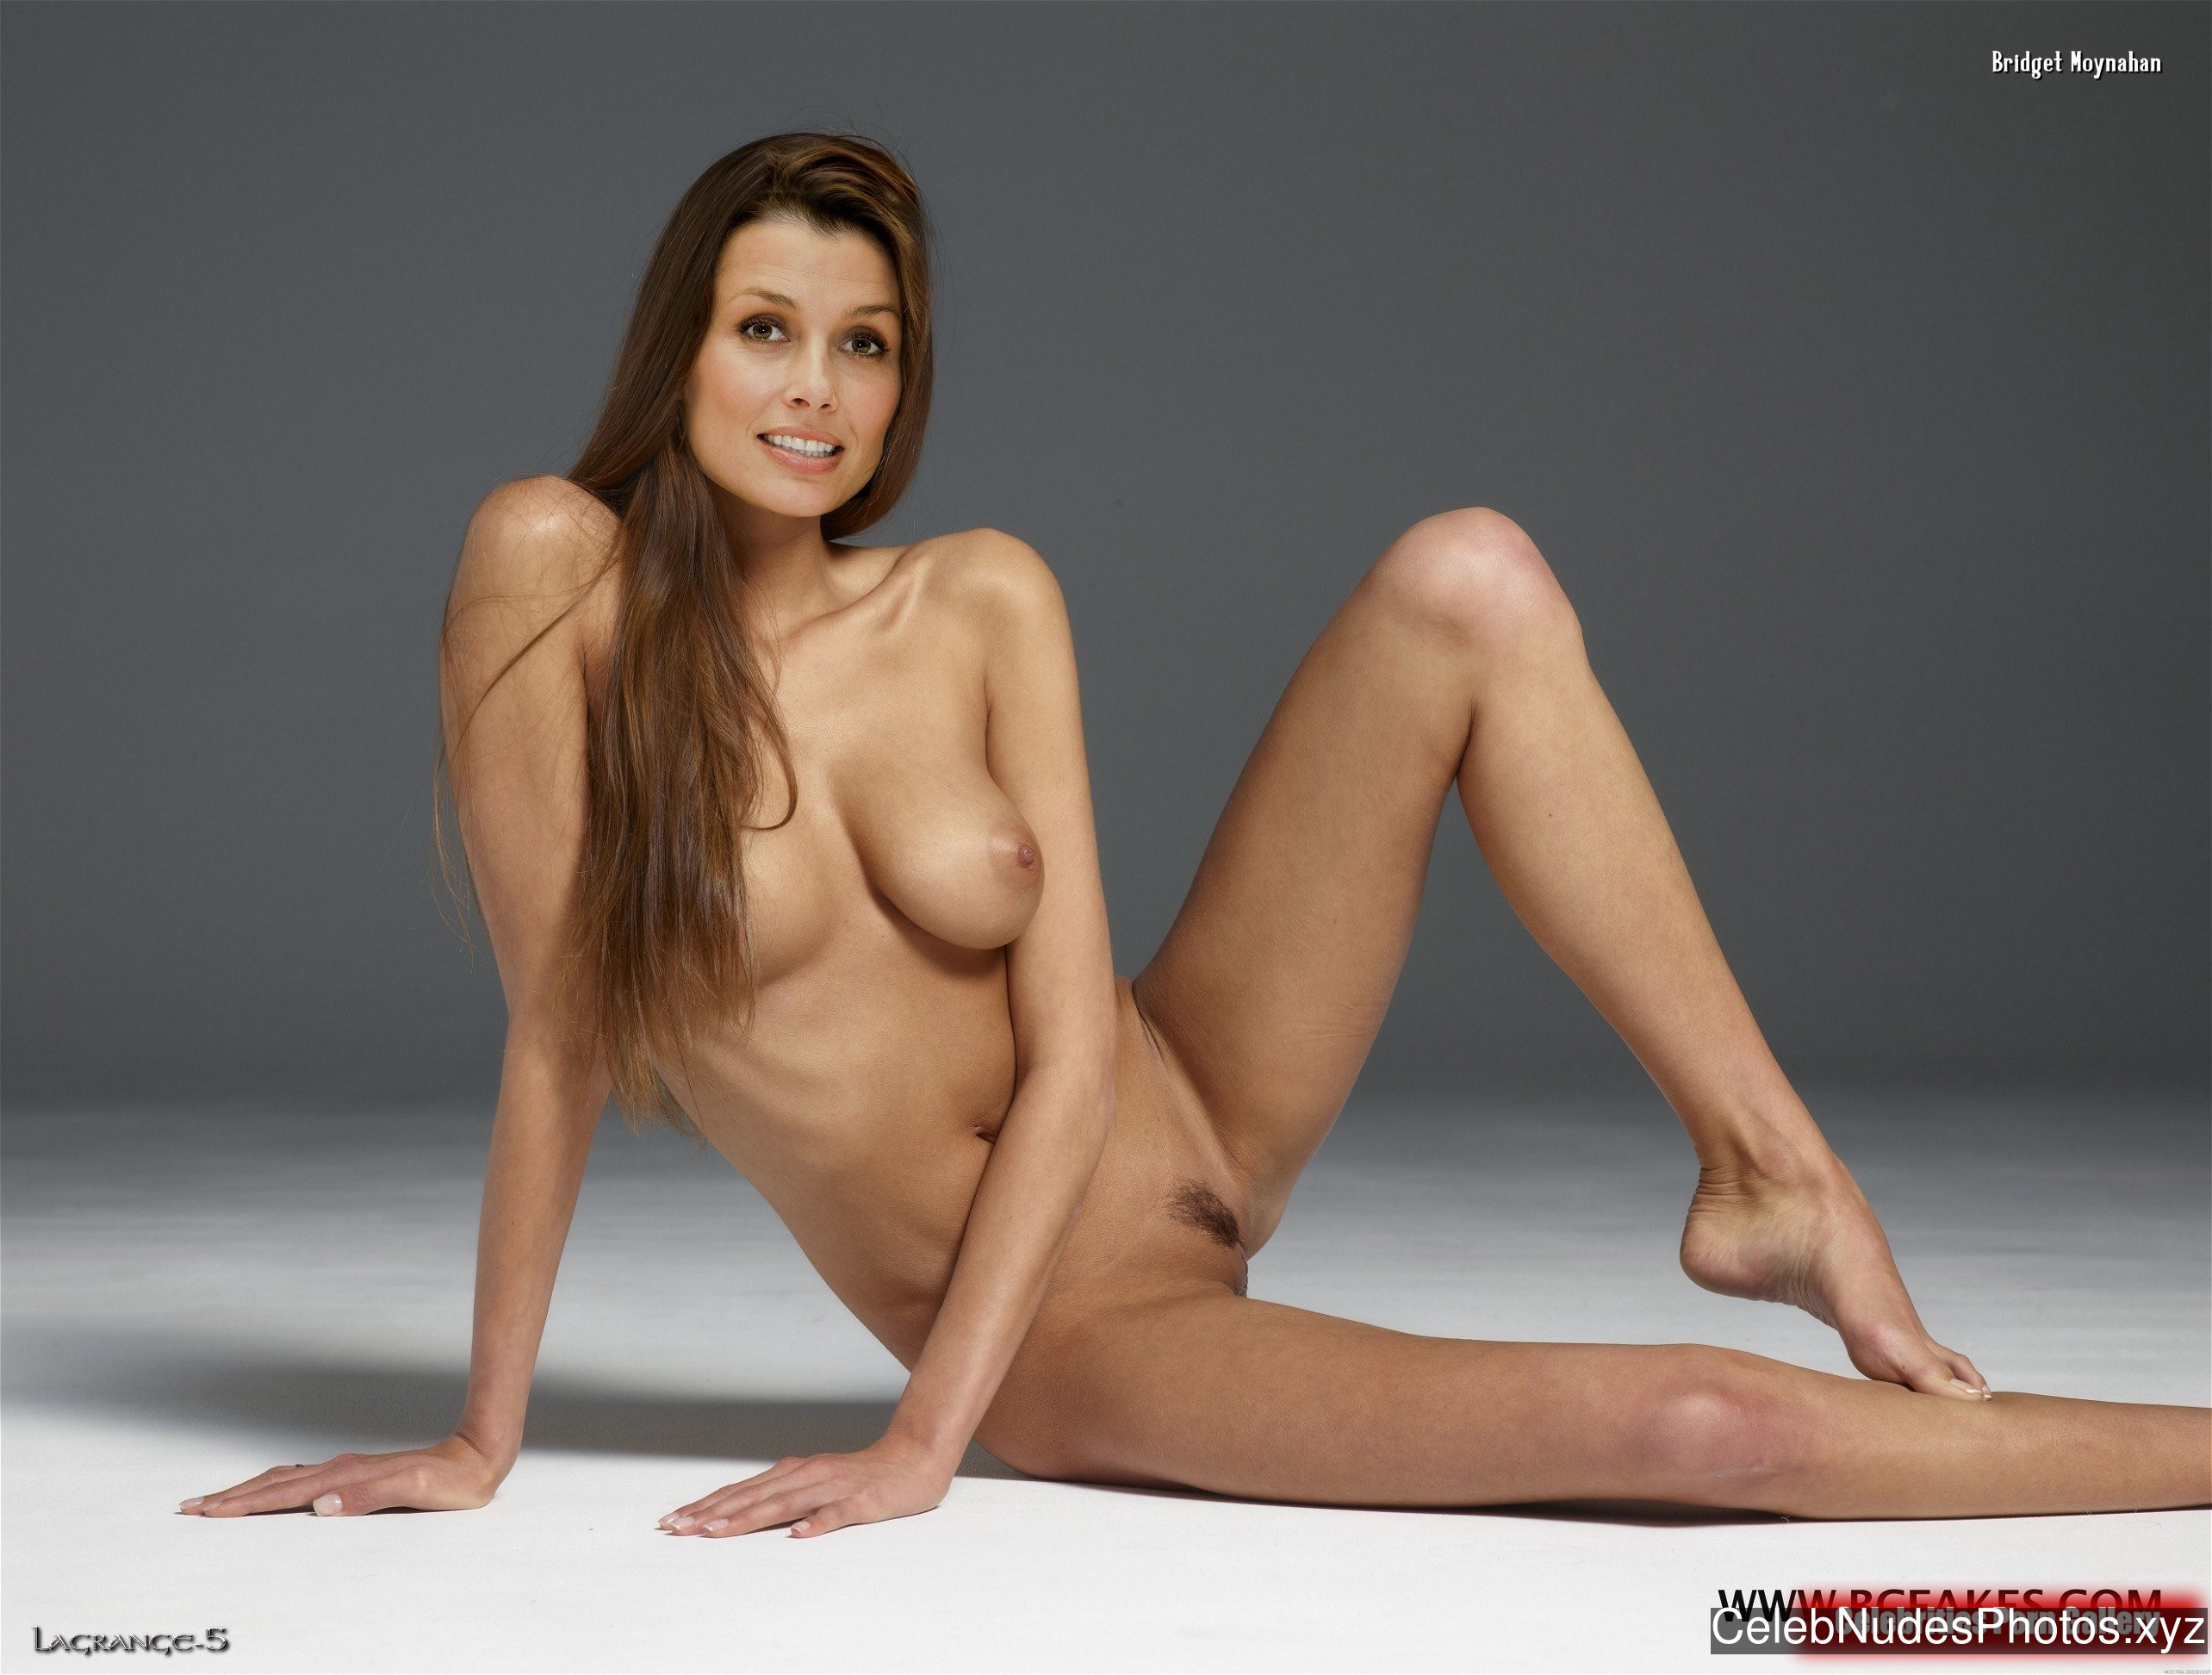 Bridget Moynahan Best Celebrity Nude sexy 5